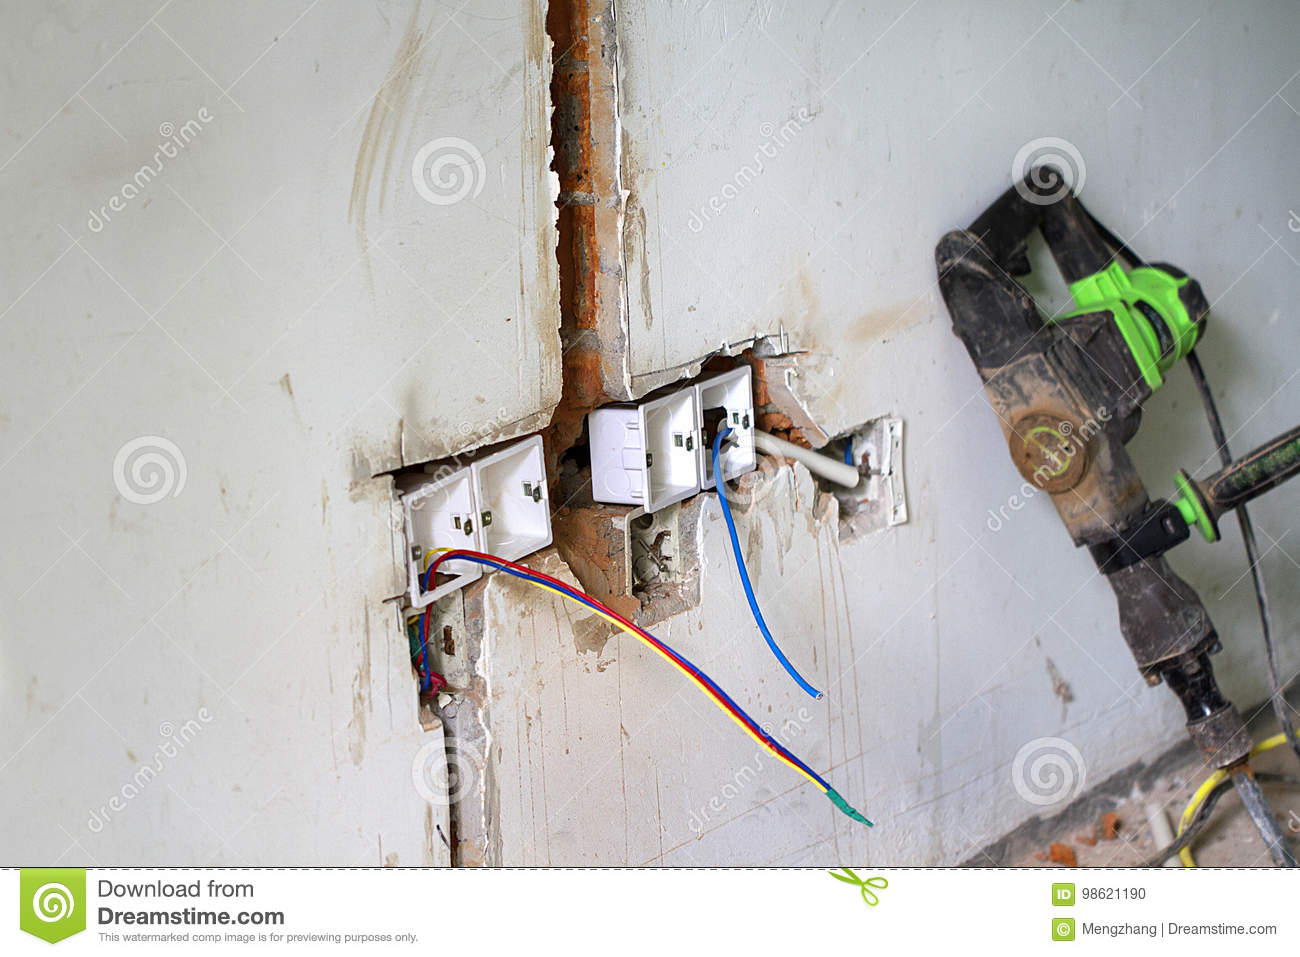 hight resolution of electrical renovation work cable electric electrical box with wiring during residential renovation